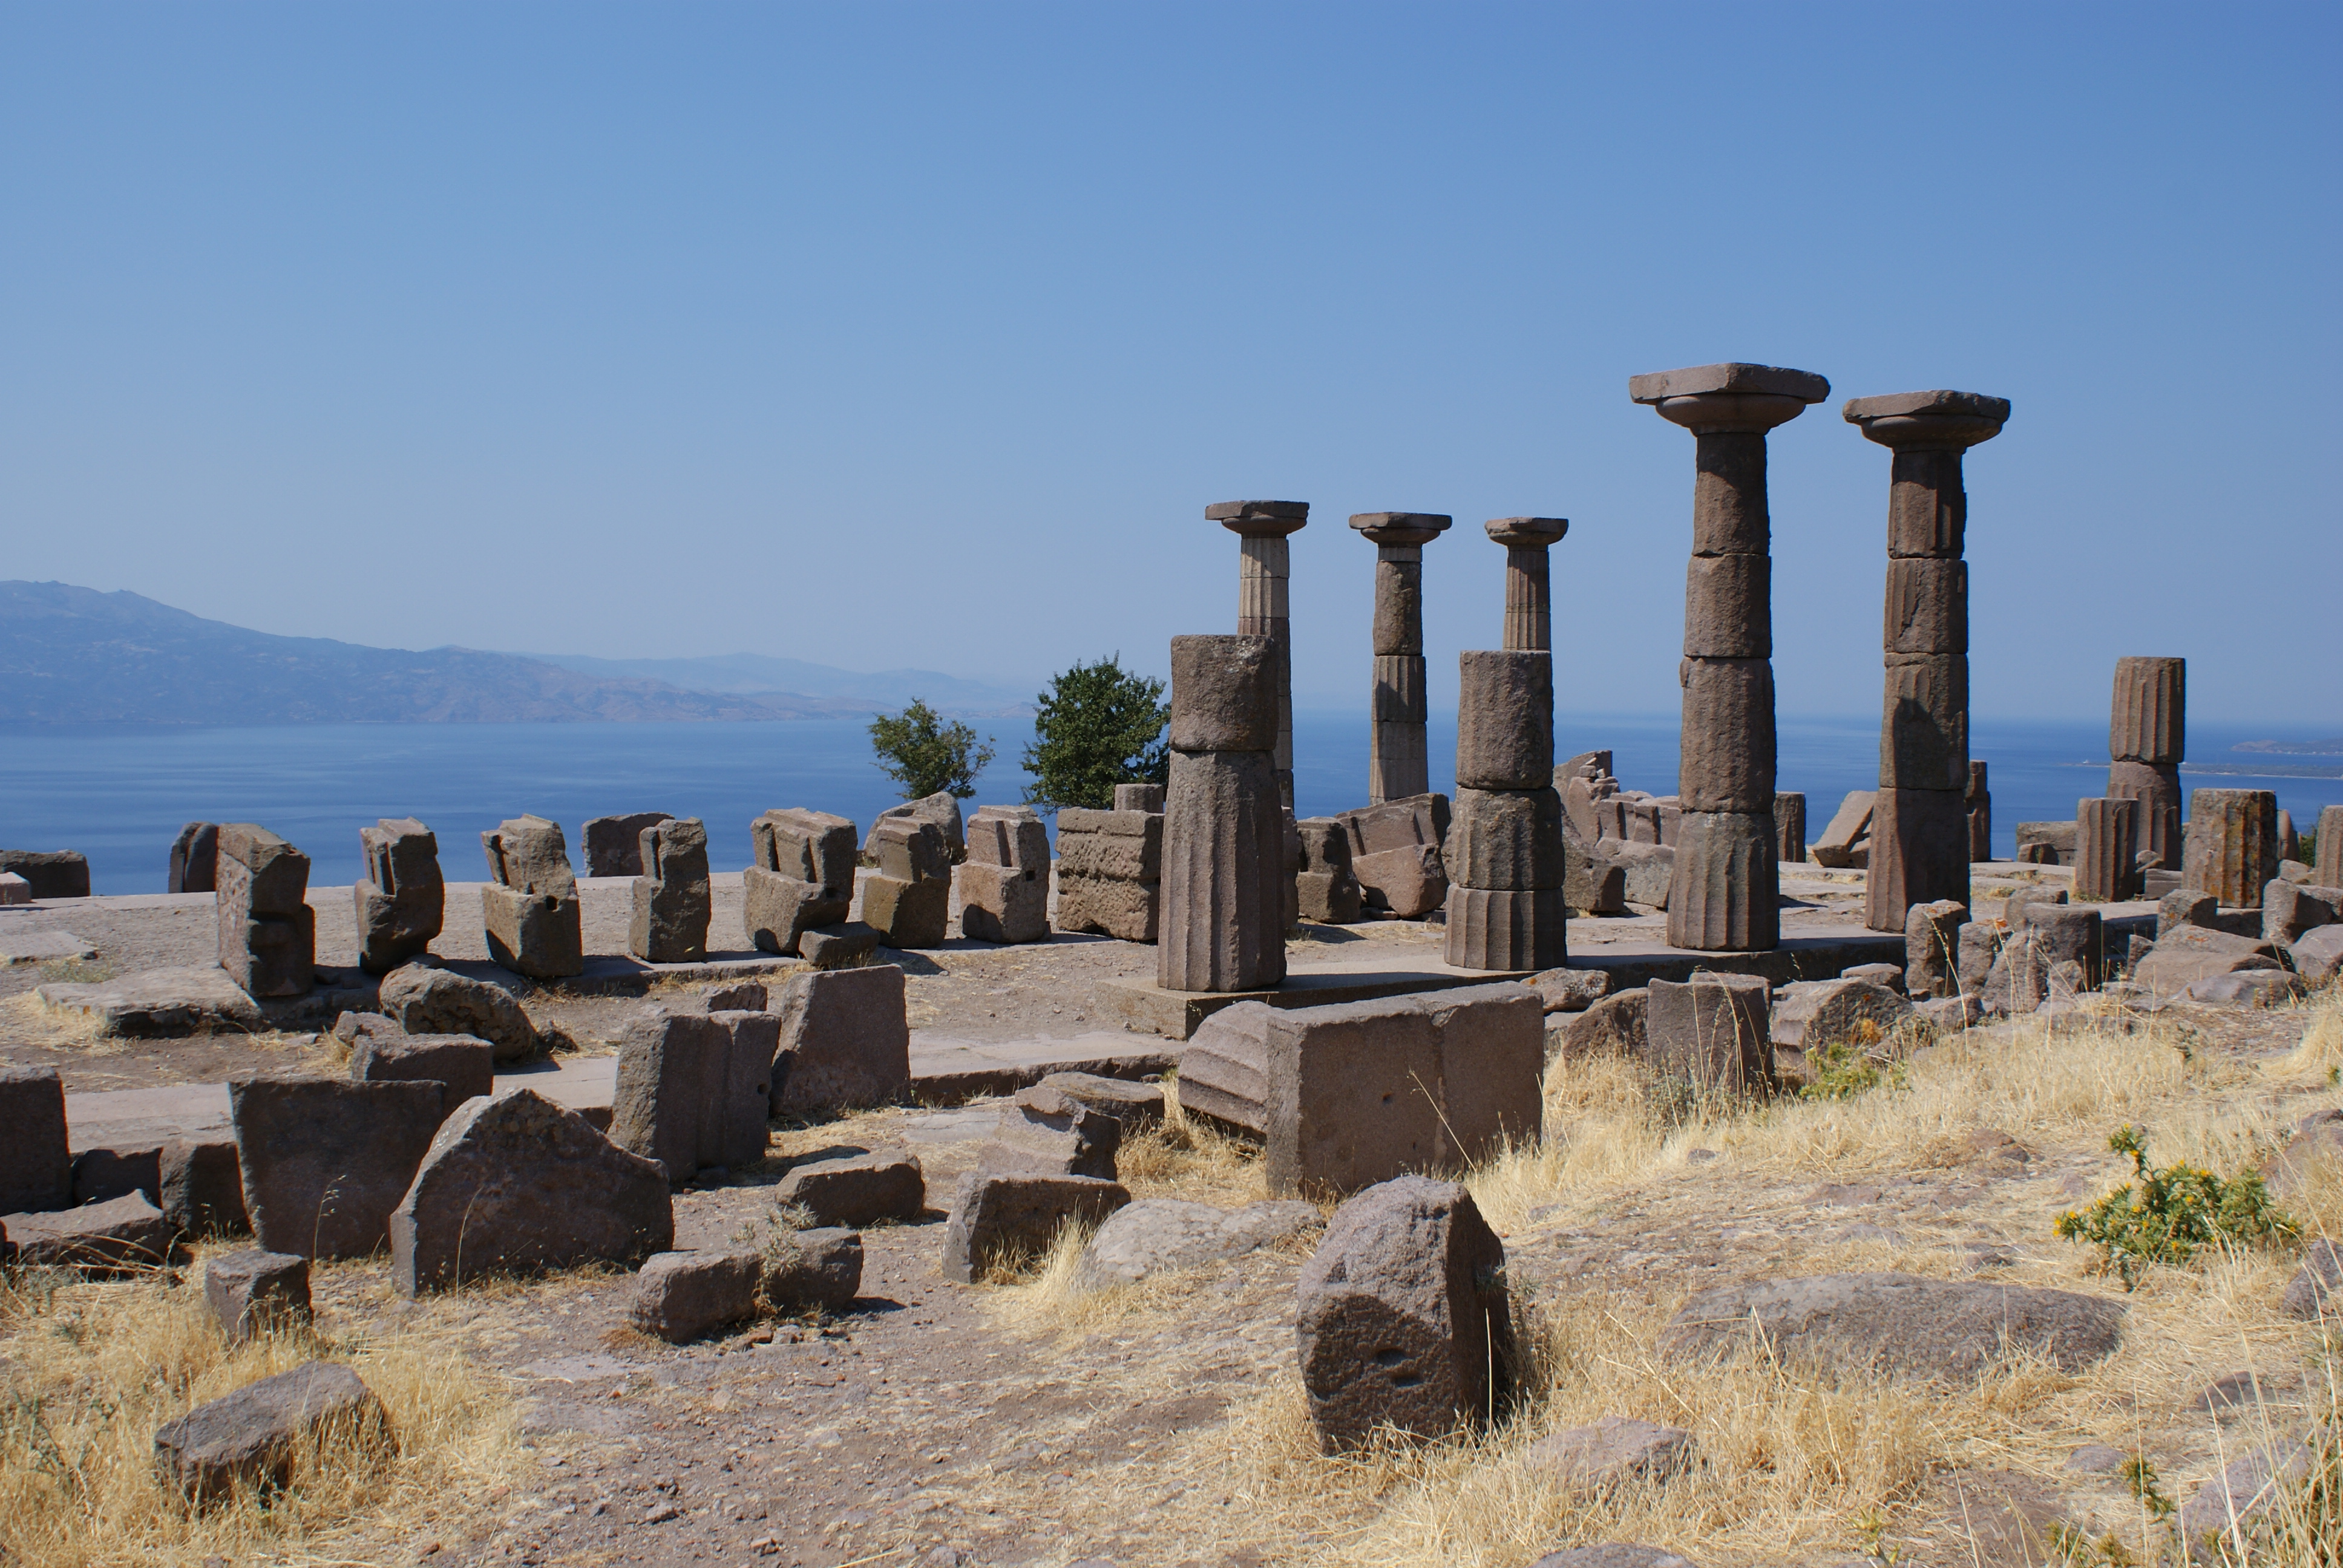 File:Temple of Athena, Assos 1.jpg - Wikimedia Commons